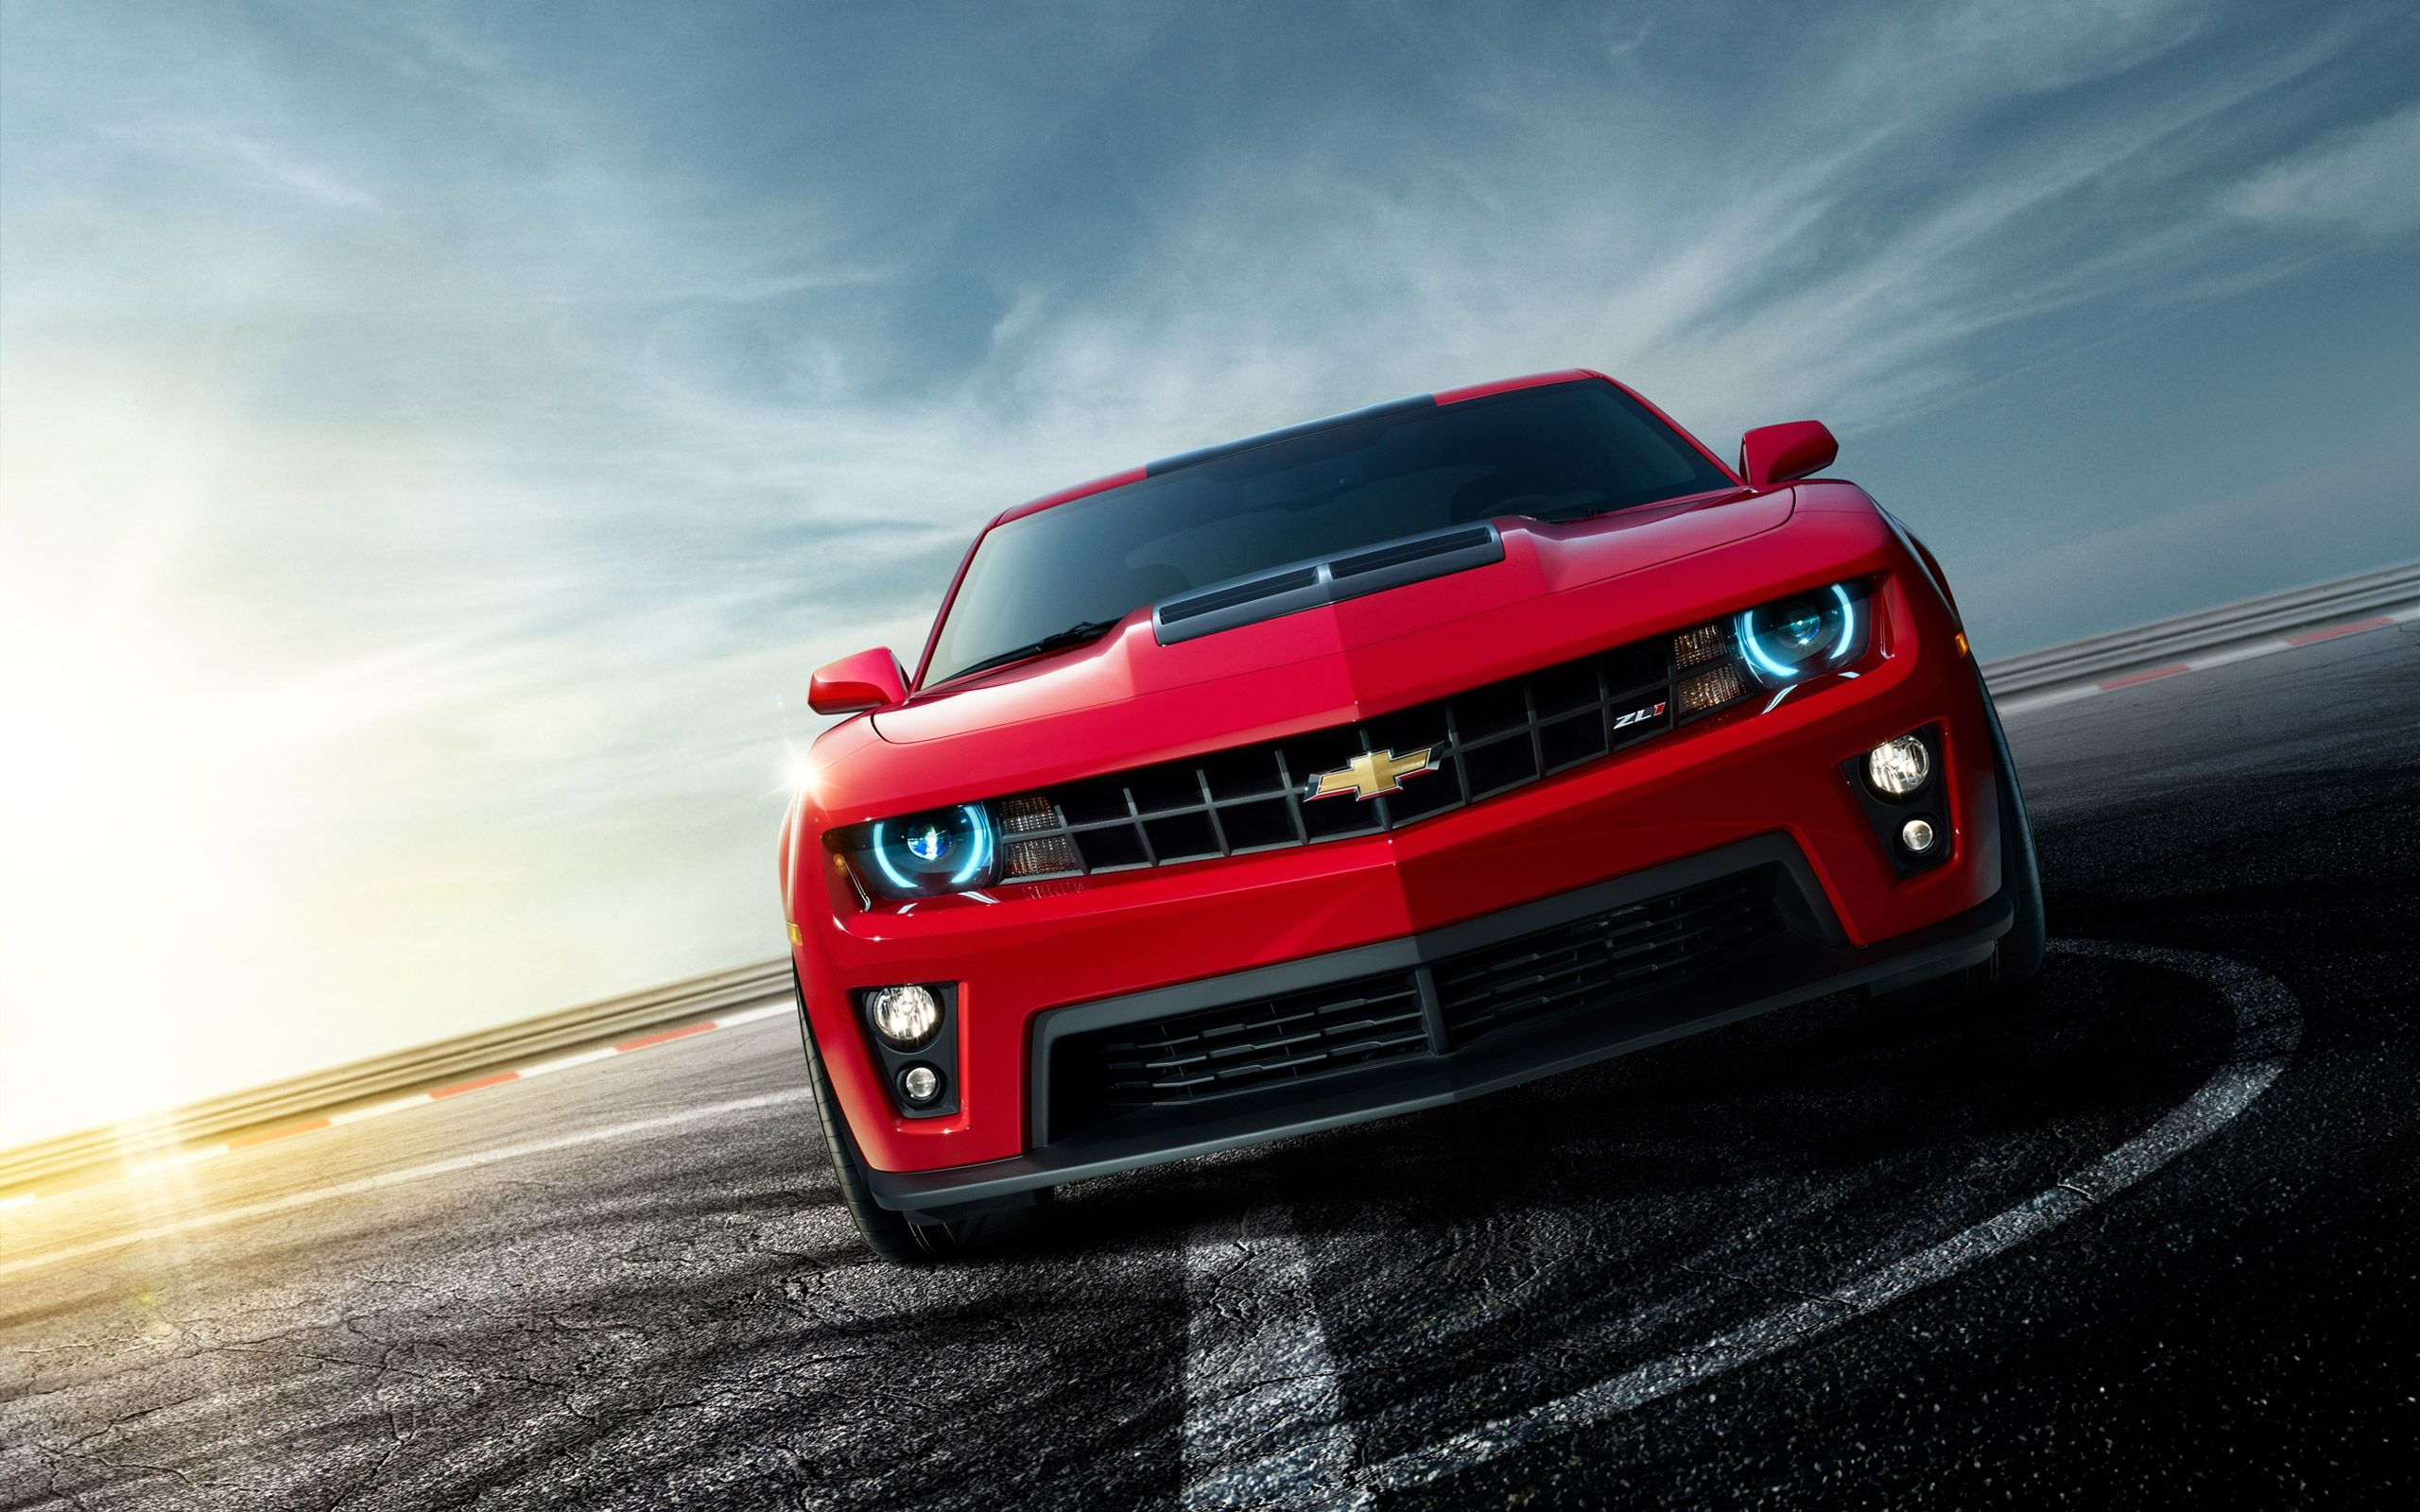 Cool Car Wallpaper High Quality Resolution Wgt Car Camaro Zl1